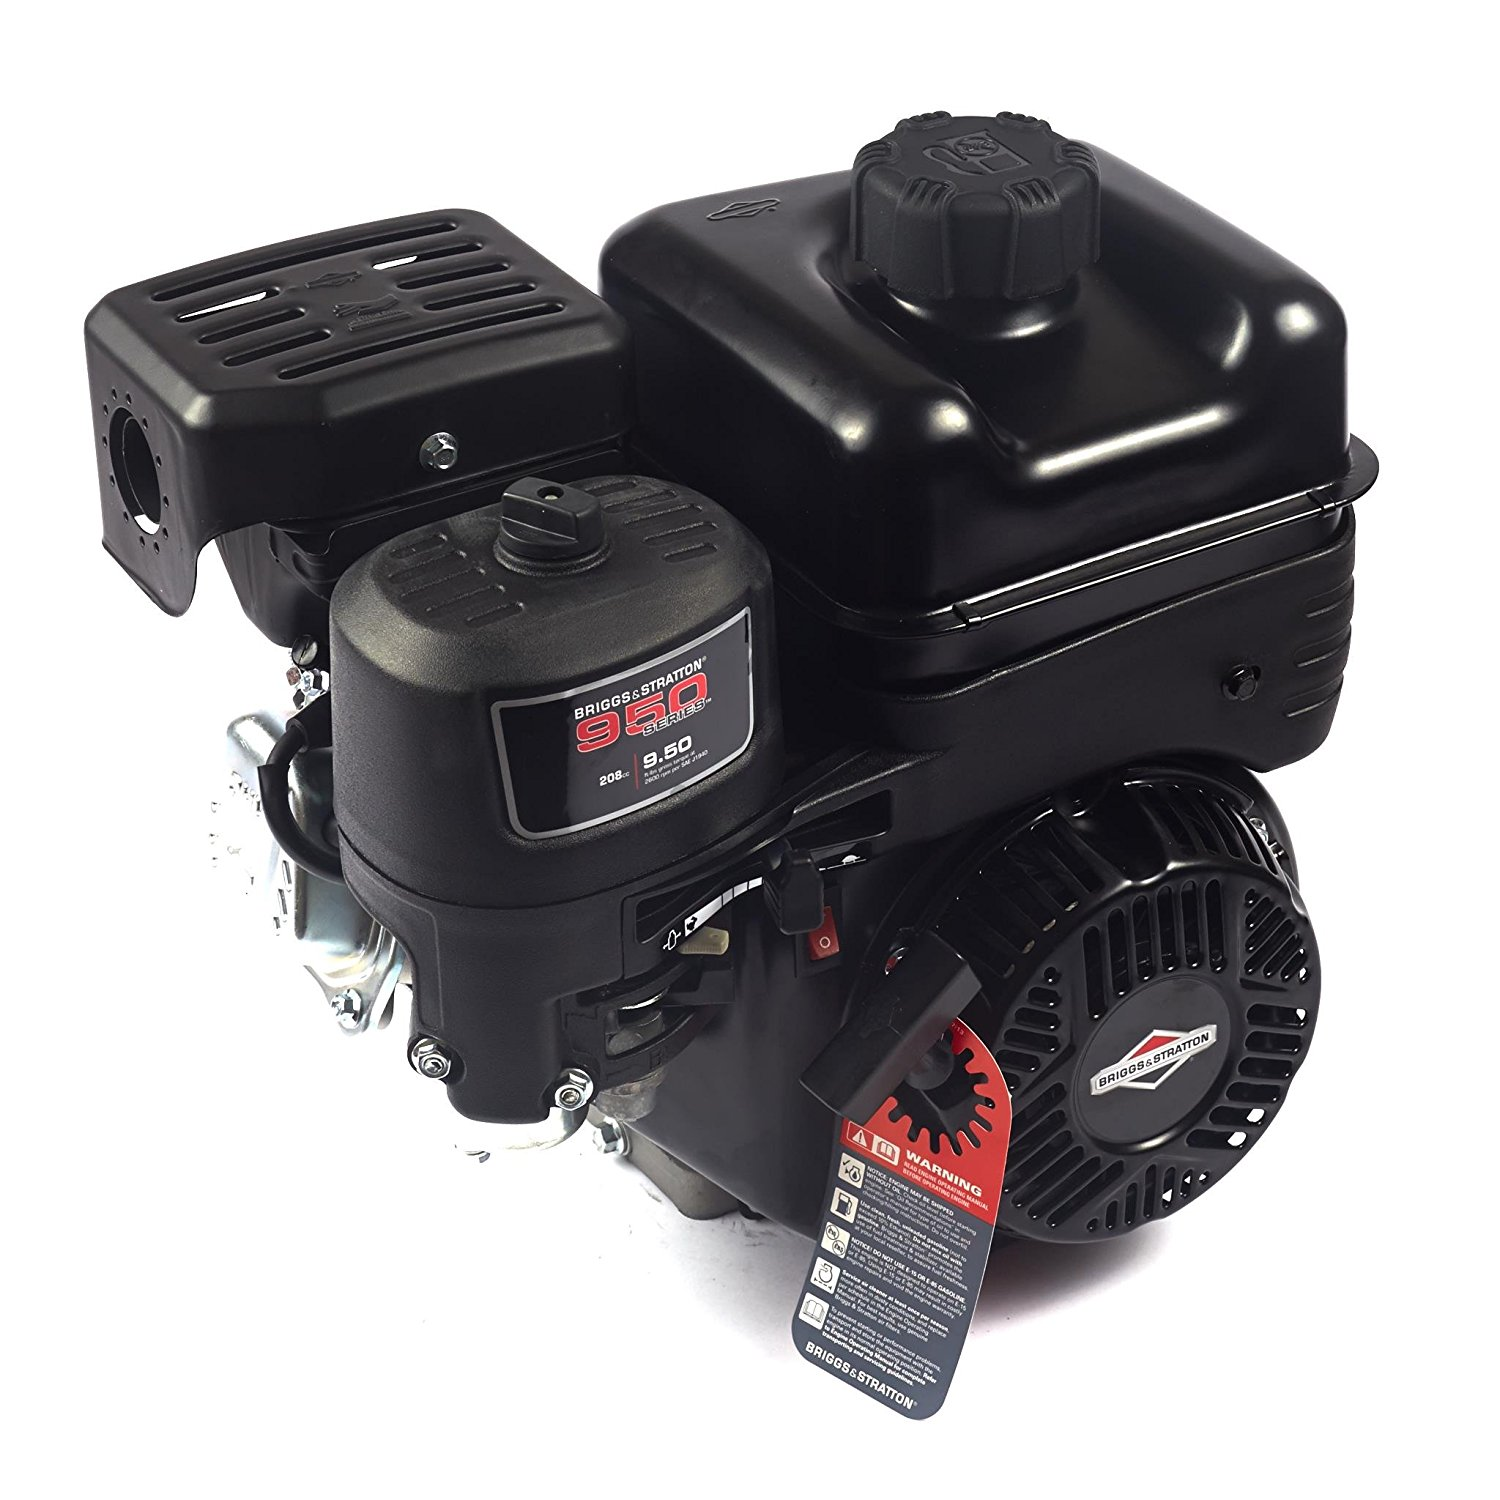 briggs stratton 950 series ohv engine bsxr950 bmi. Black Bedroom Furniture Sets. Home Design Ideas